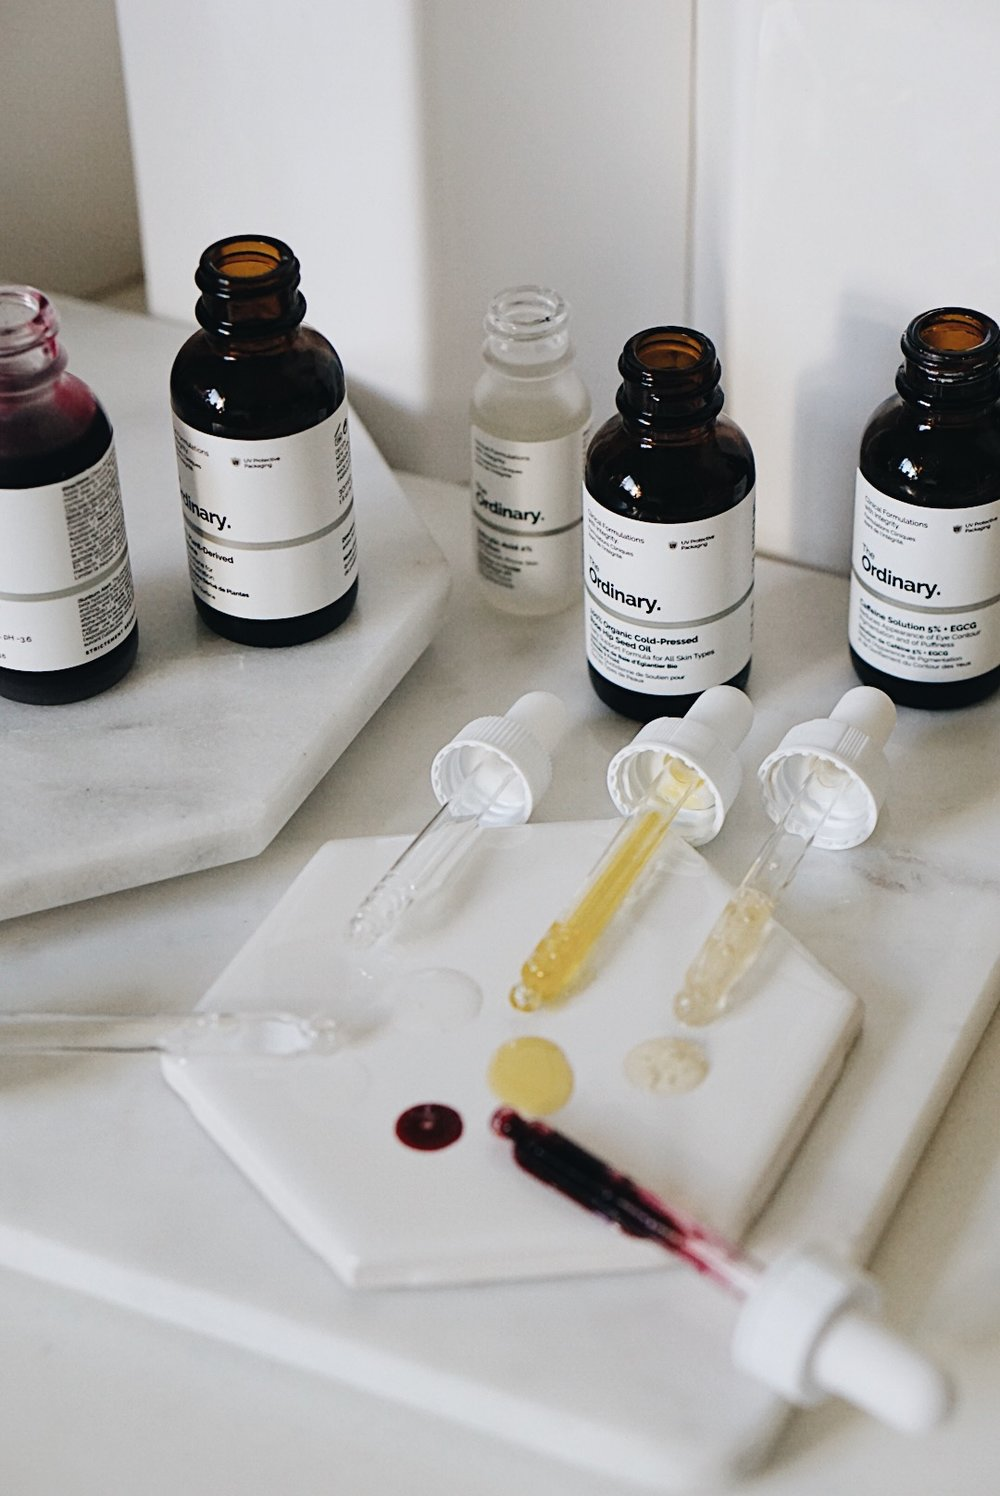 The Ordinary Skincare Review and Serums